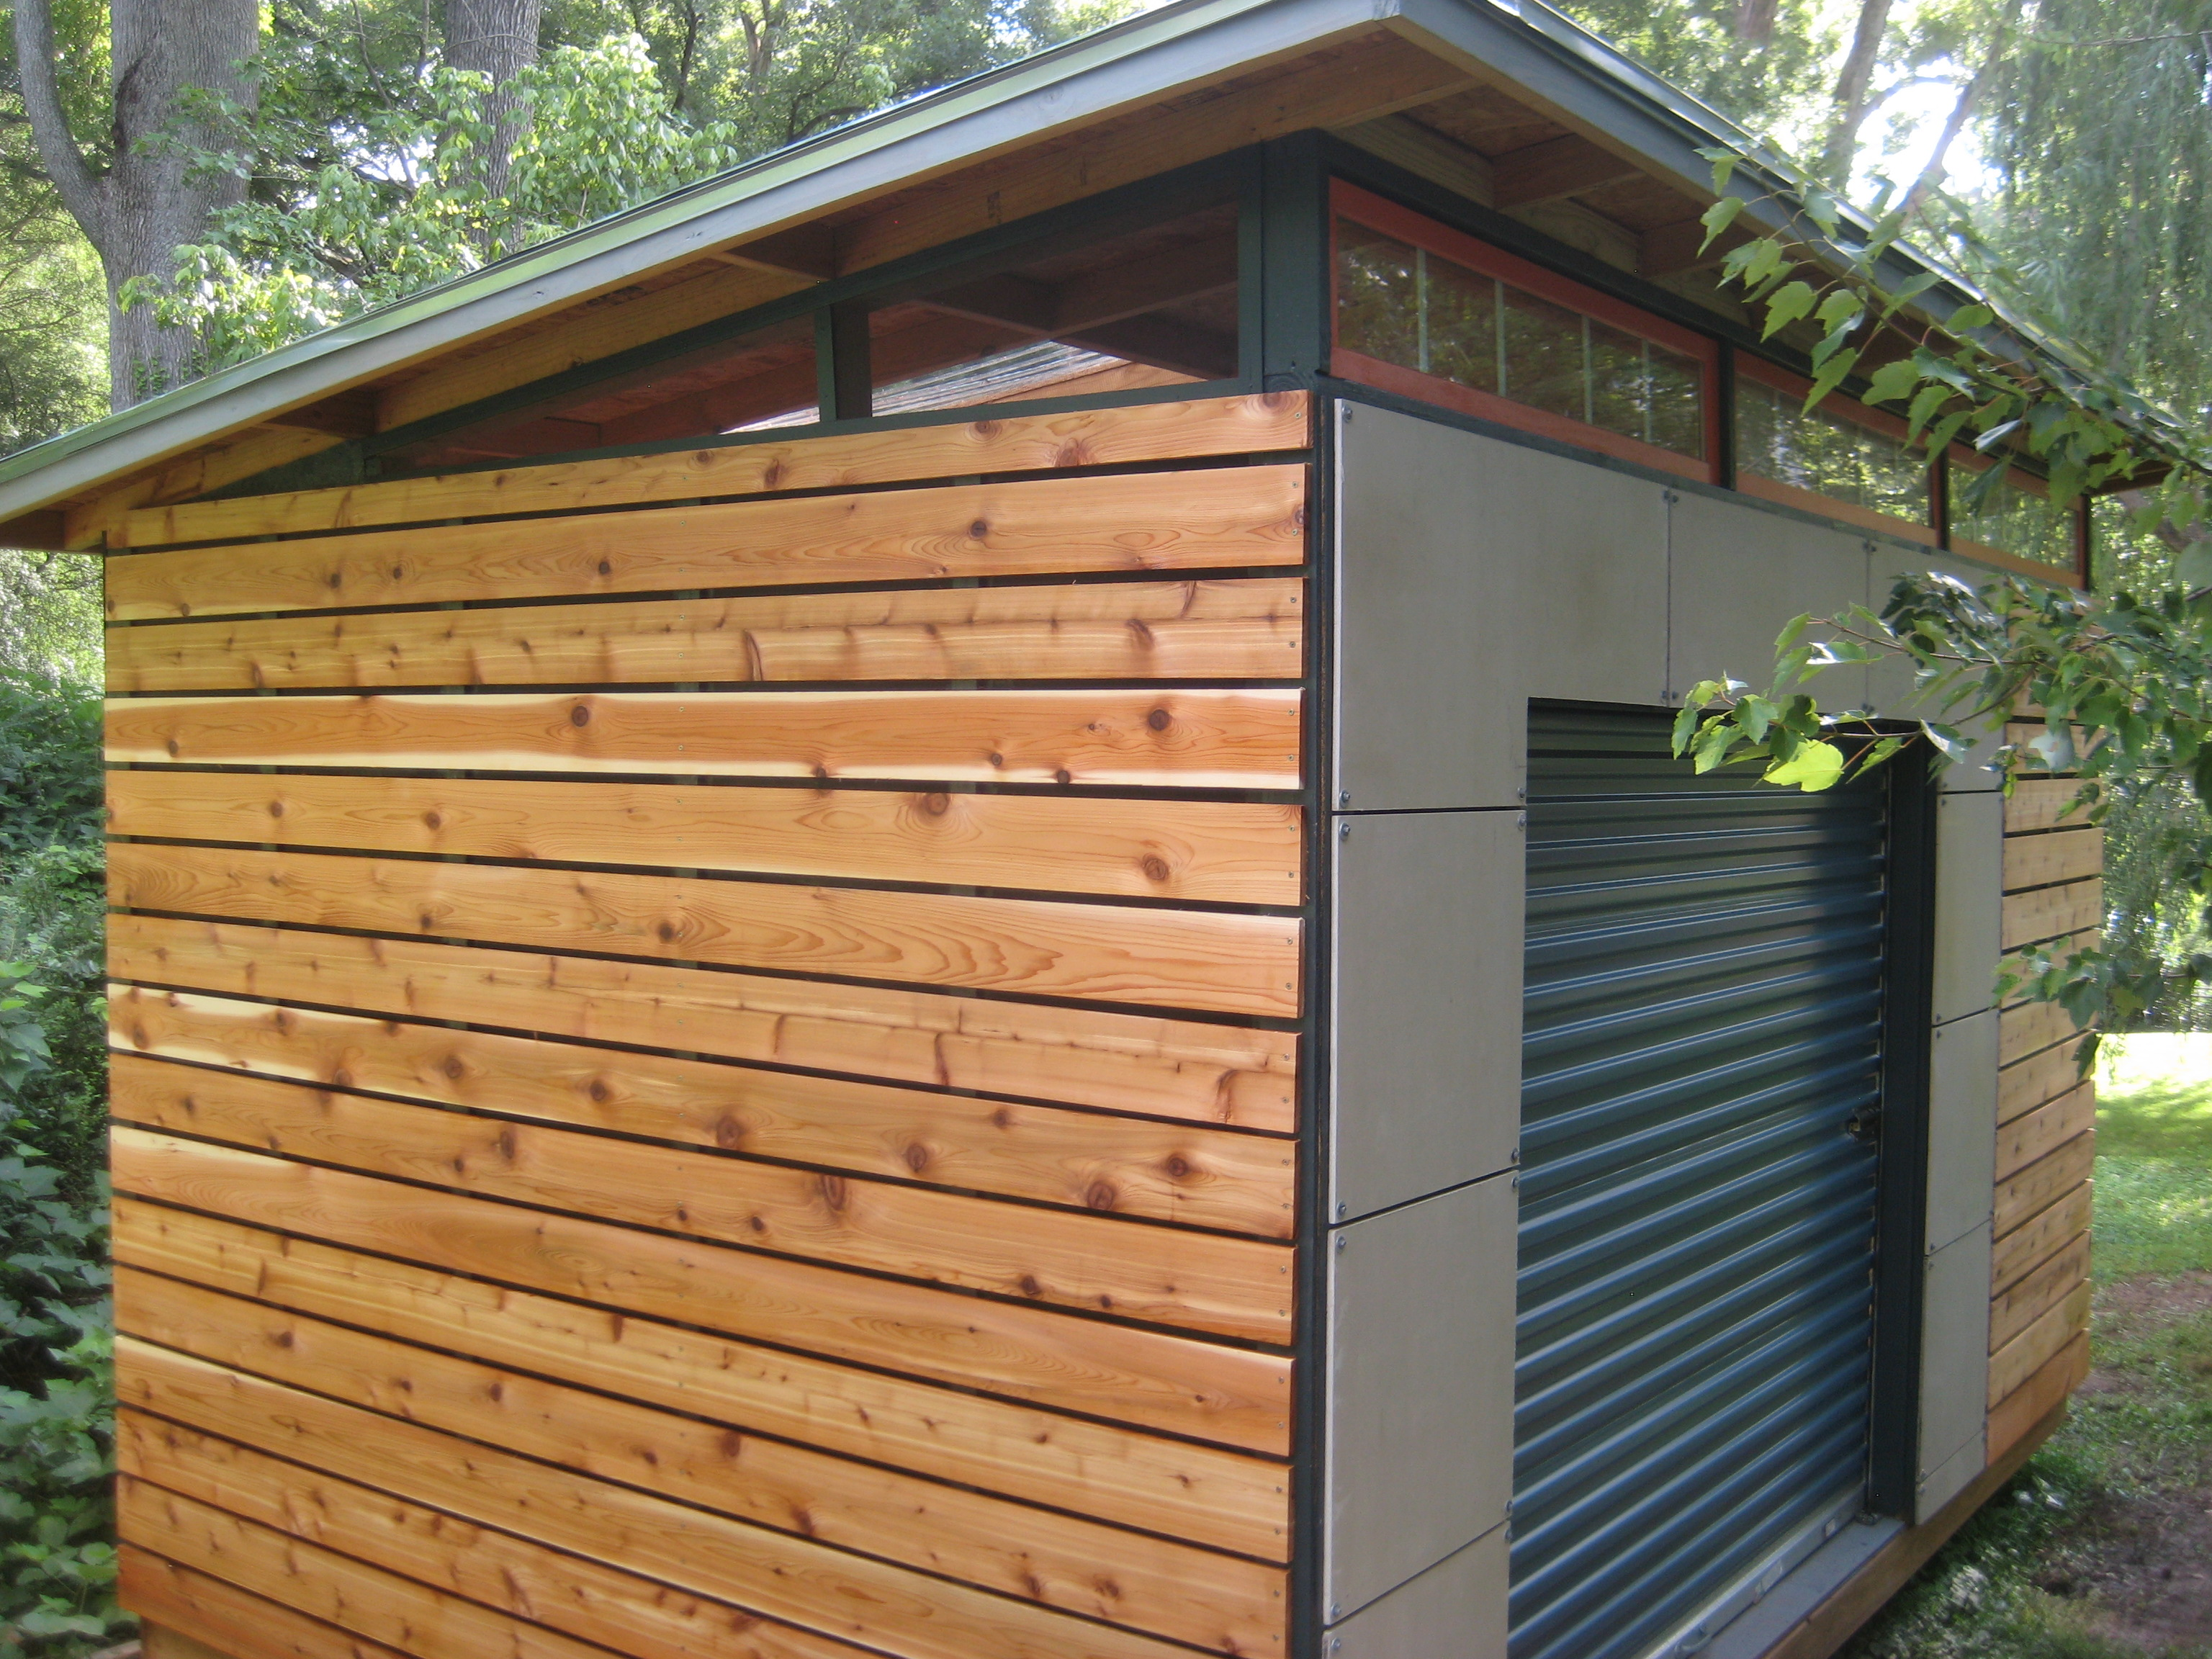 Diy modern shed project diyatlantamodern for Modern garden shed designs